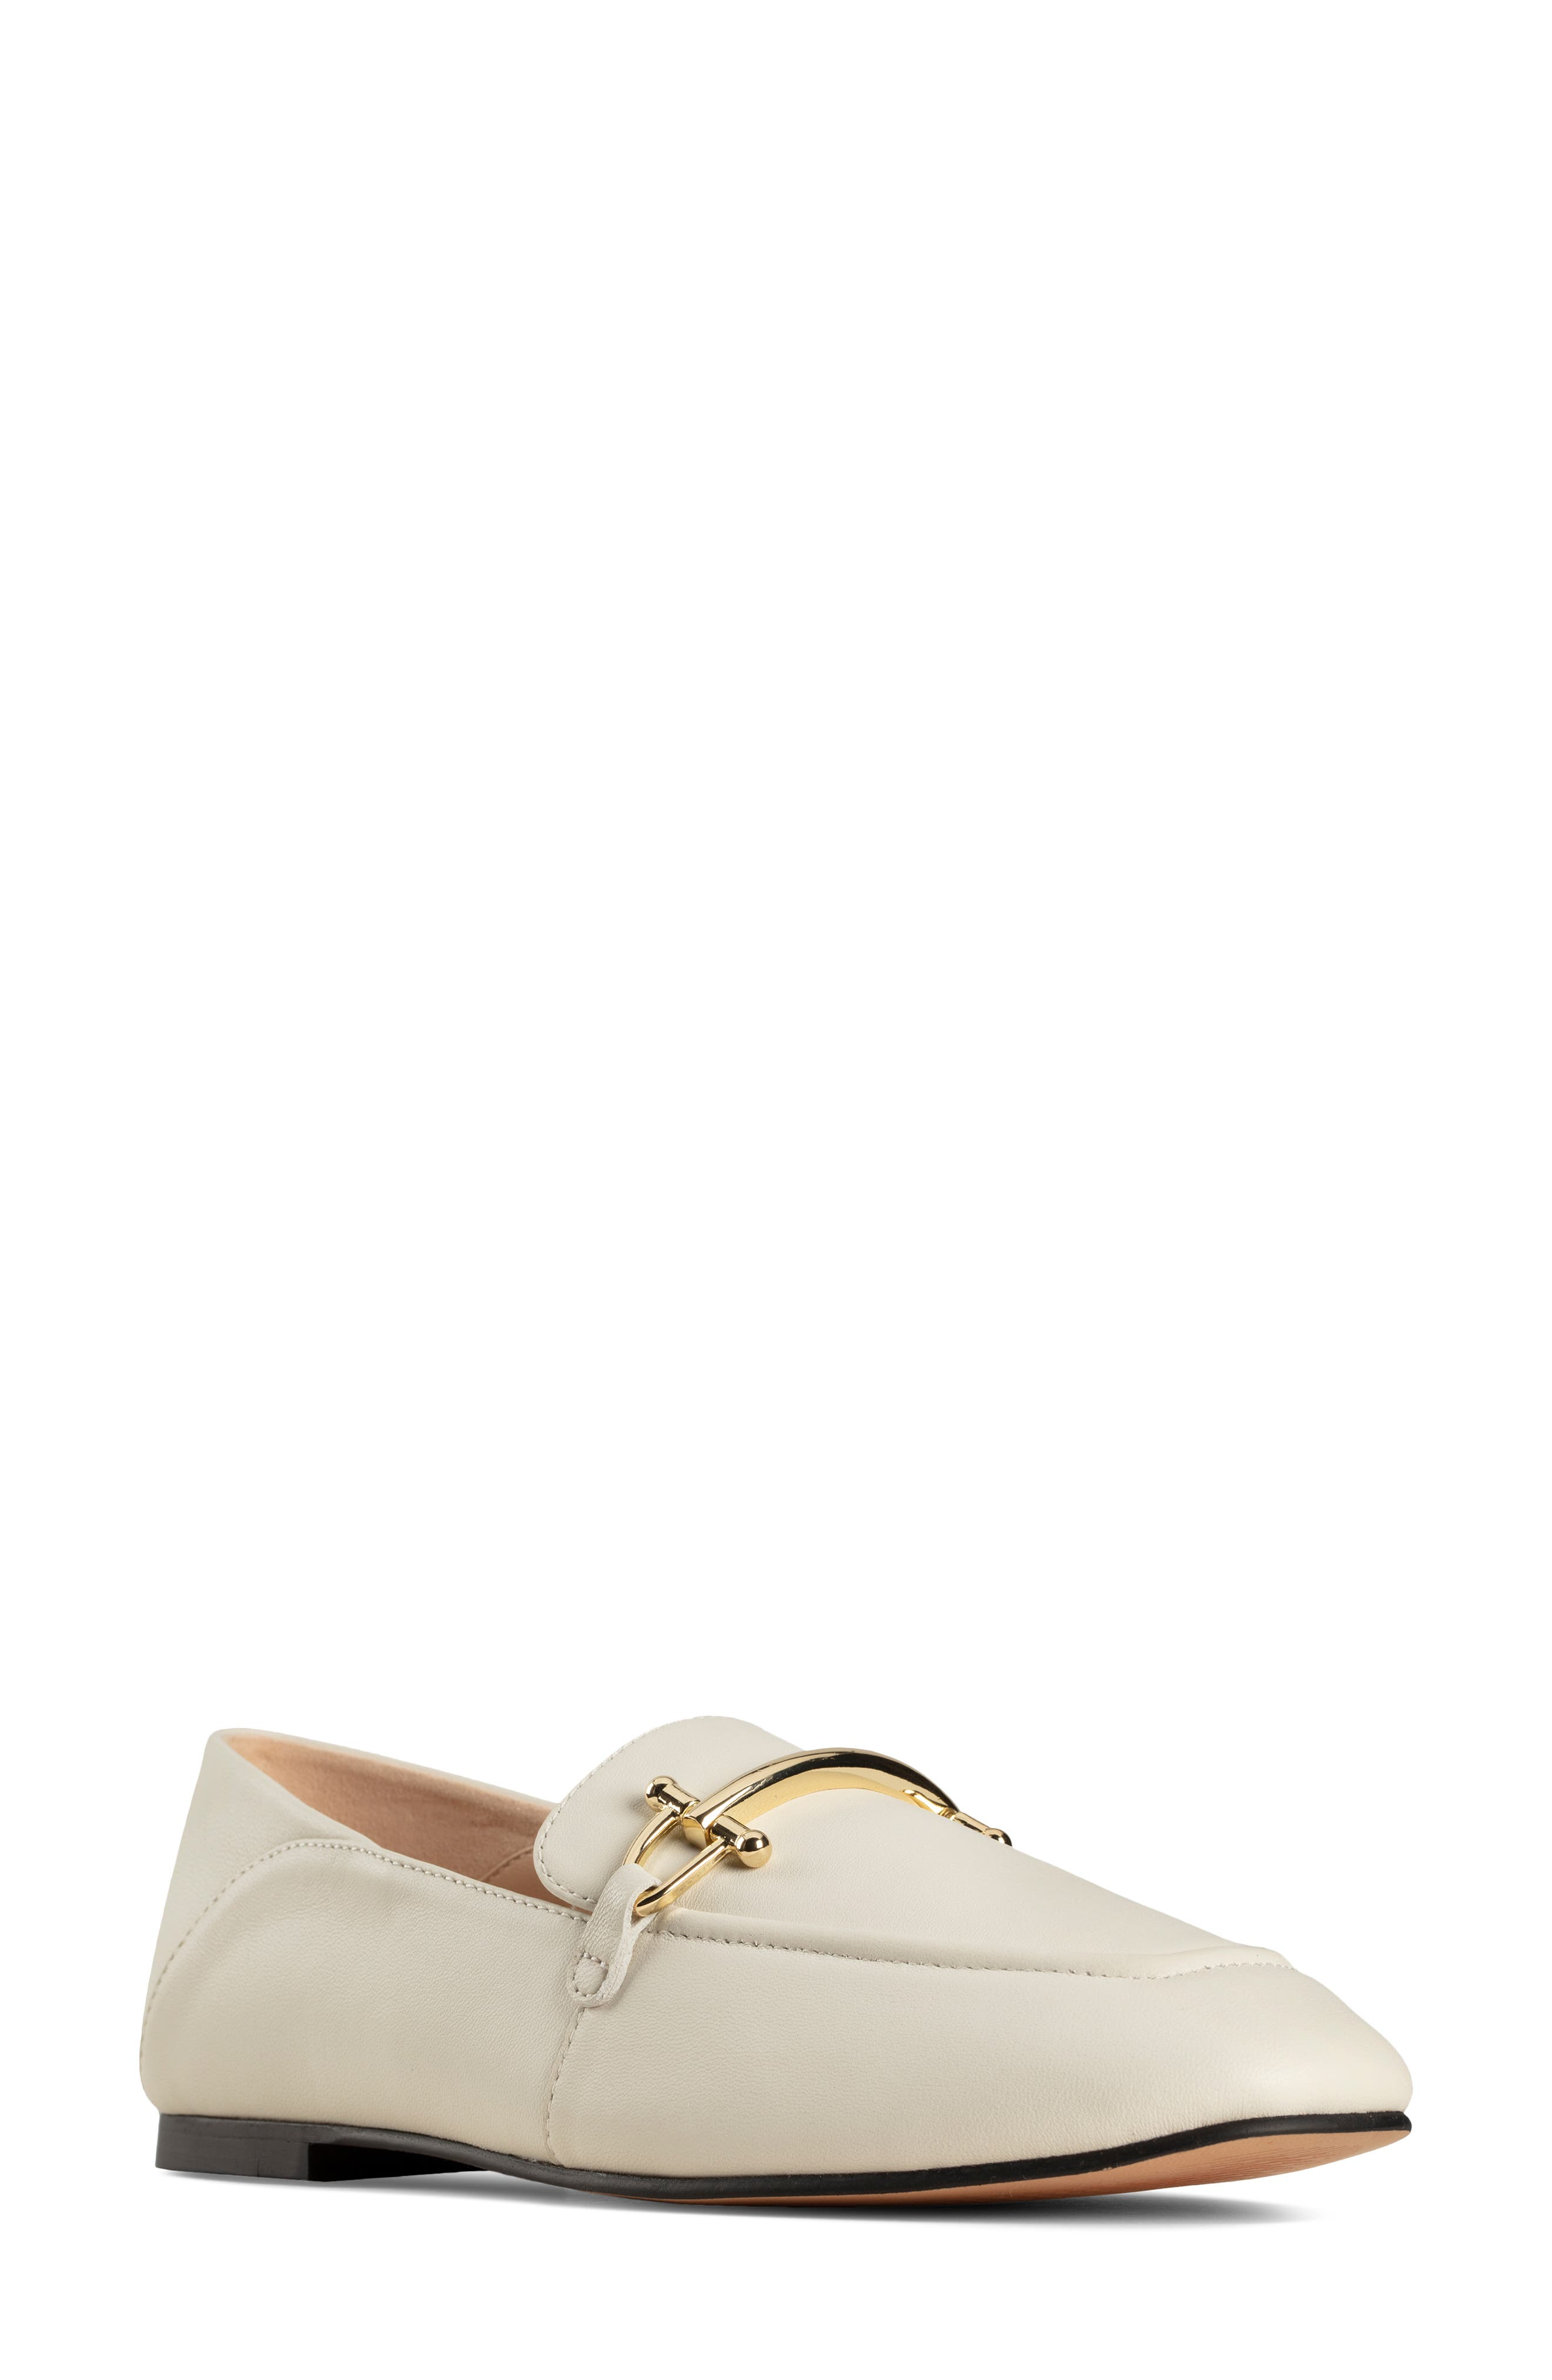 Women's Clarks Pure2 Loafer